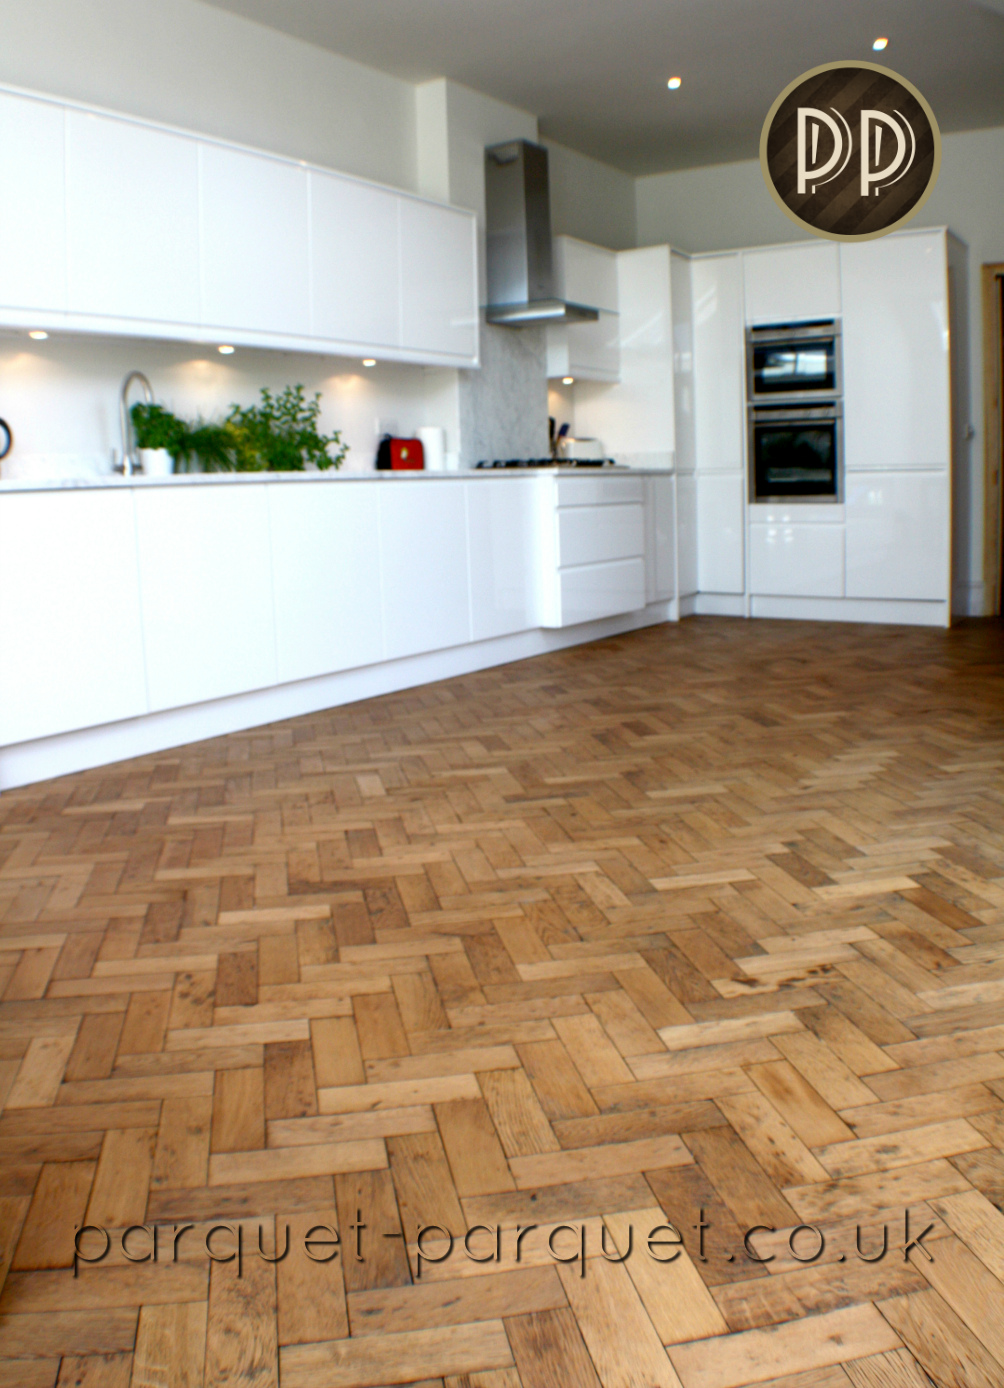 Oak kitchen flooring ideas parquet parquet for Kitchen flooring options uk